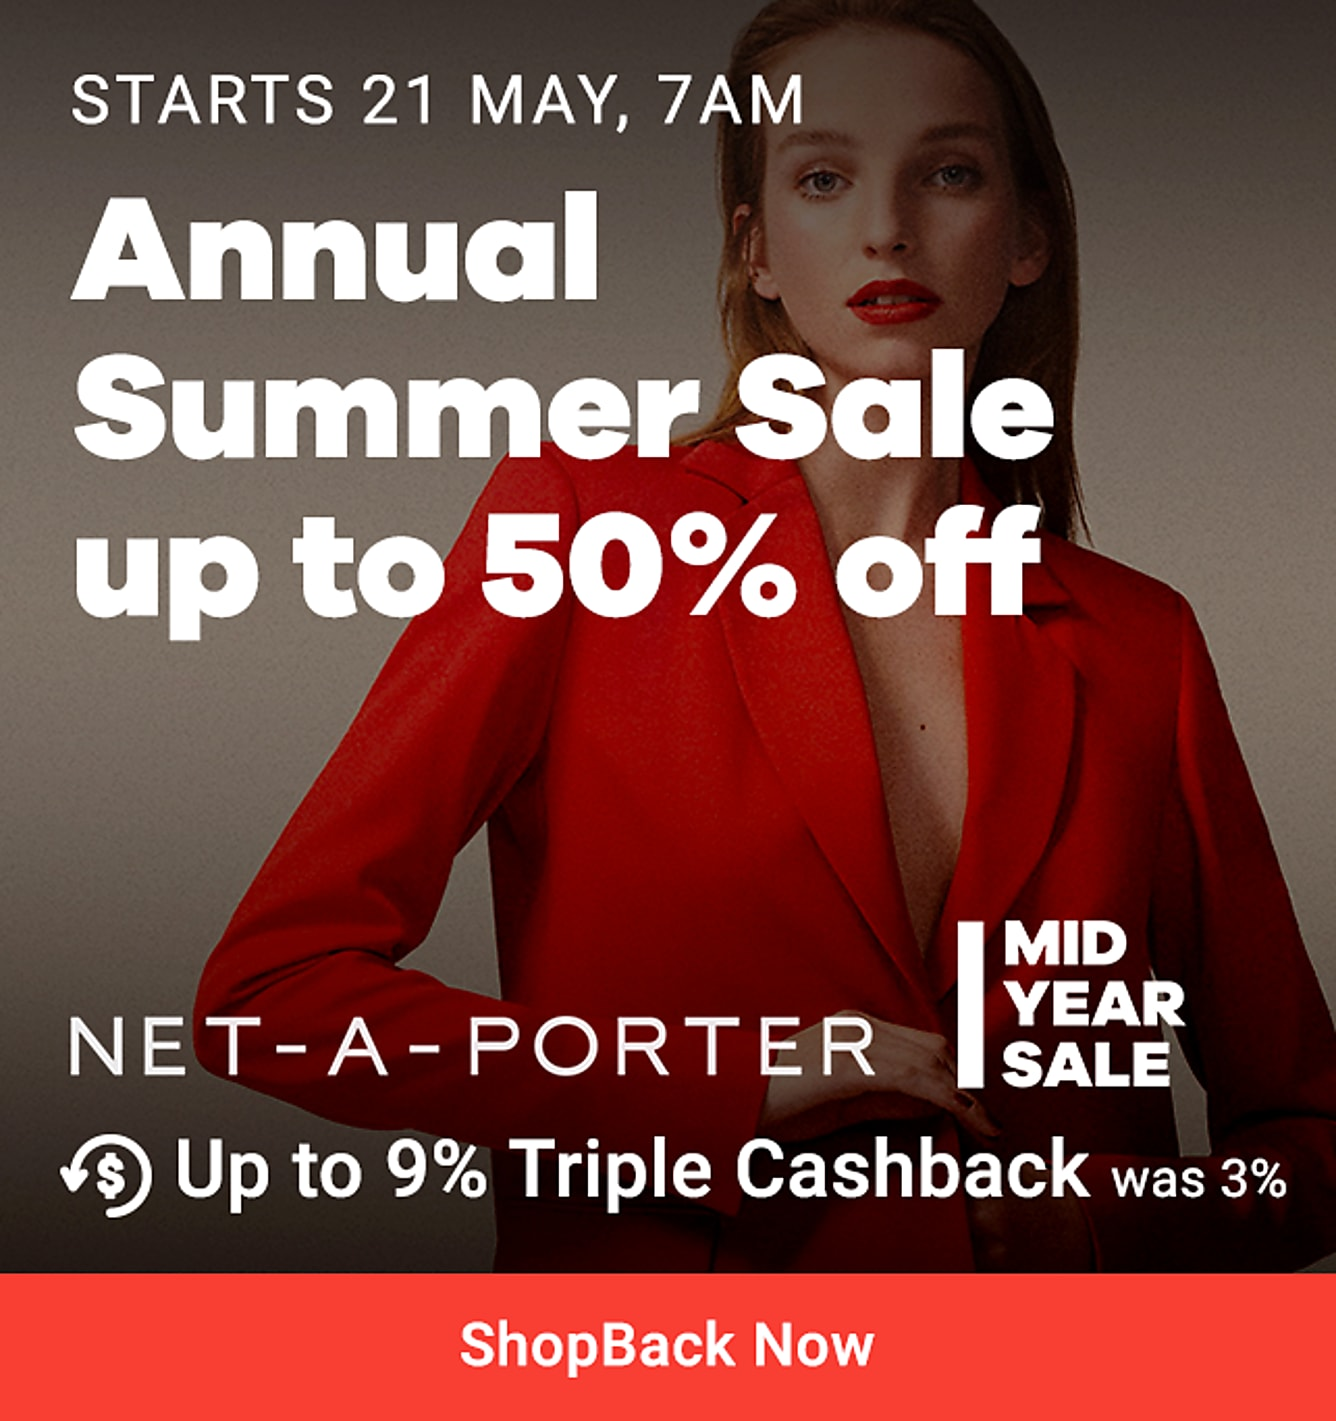 net-a-porter mid year sale